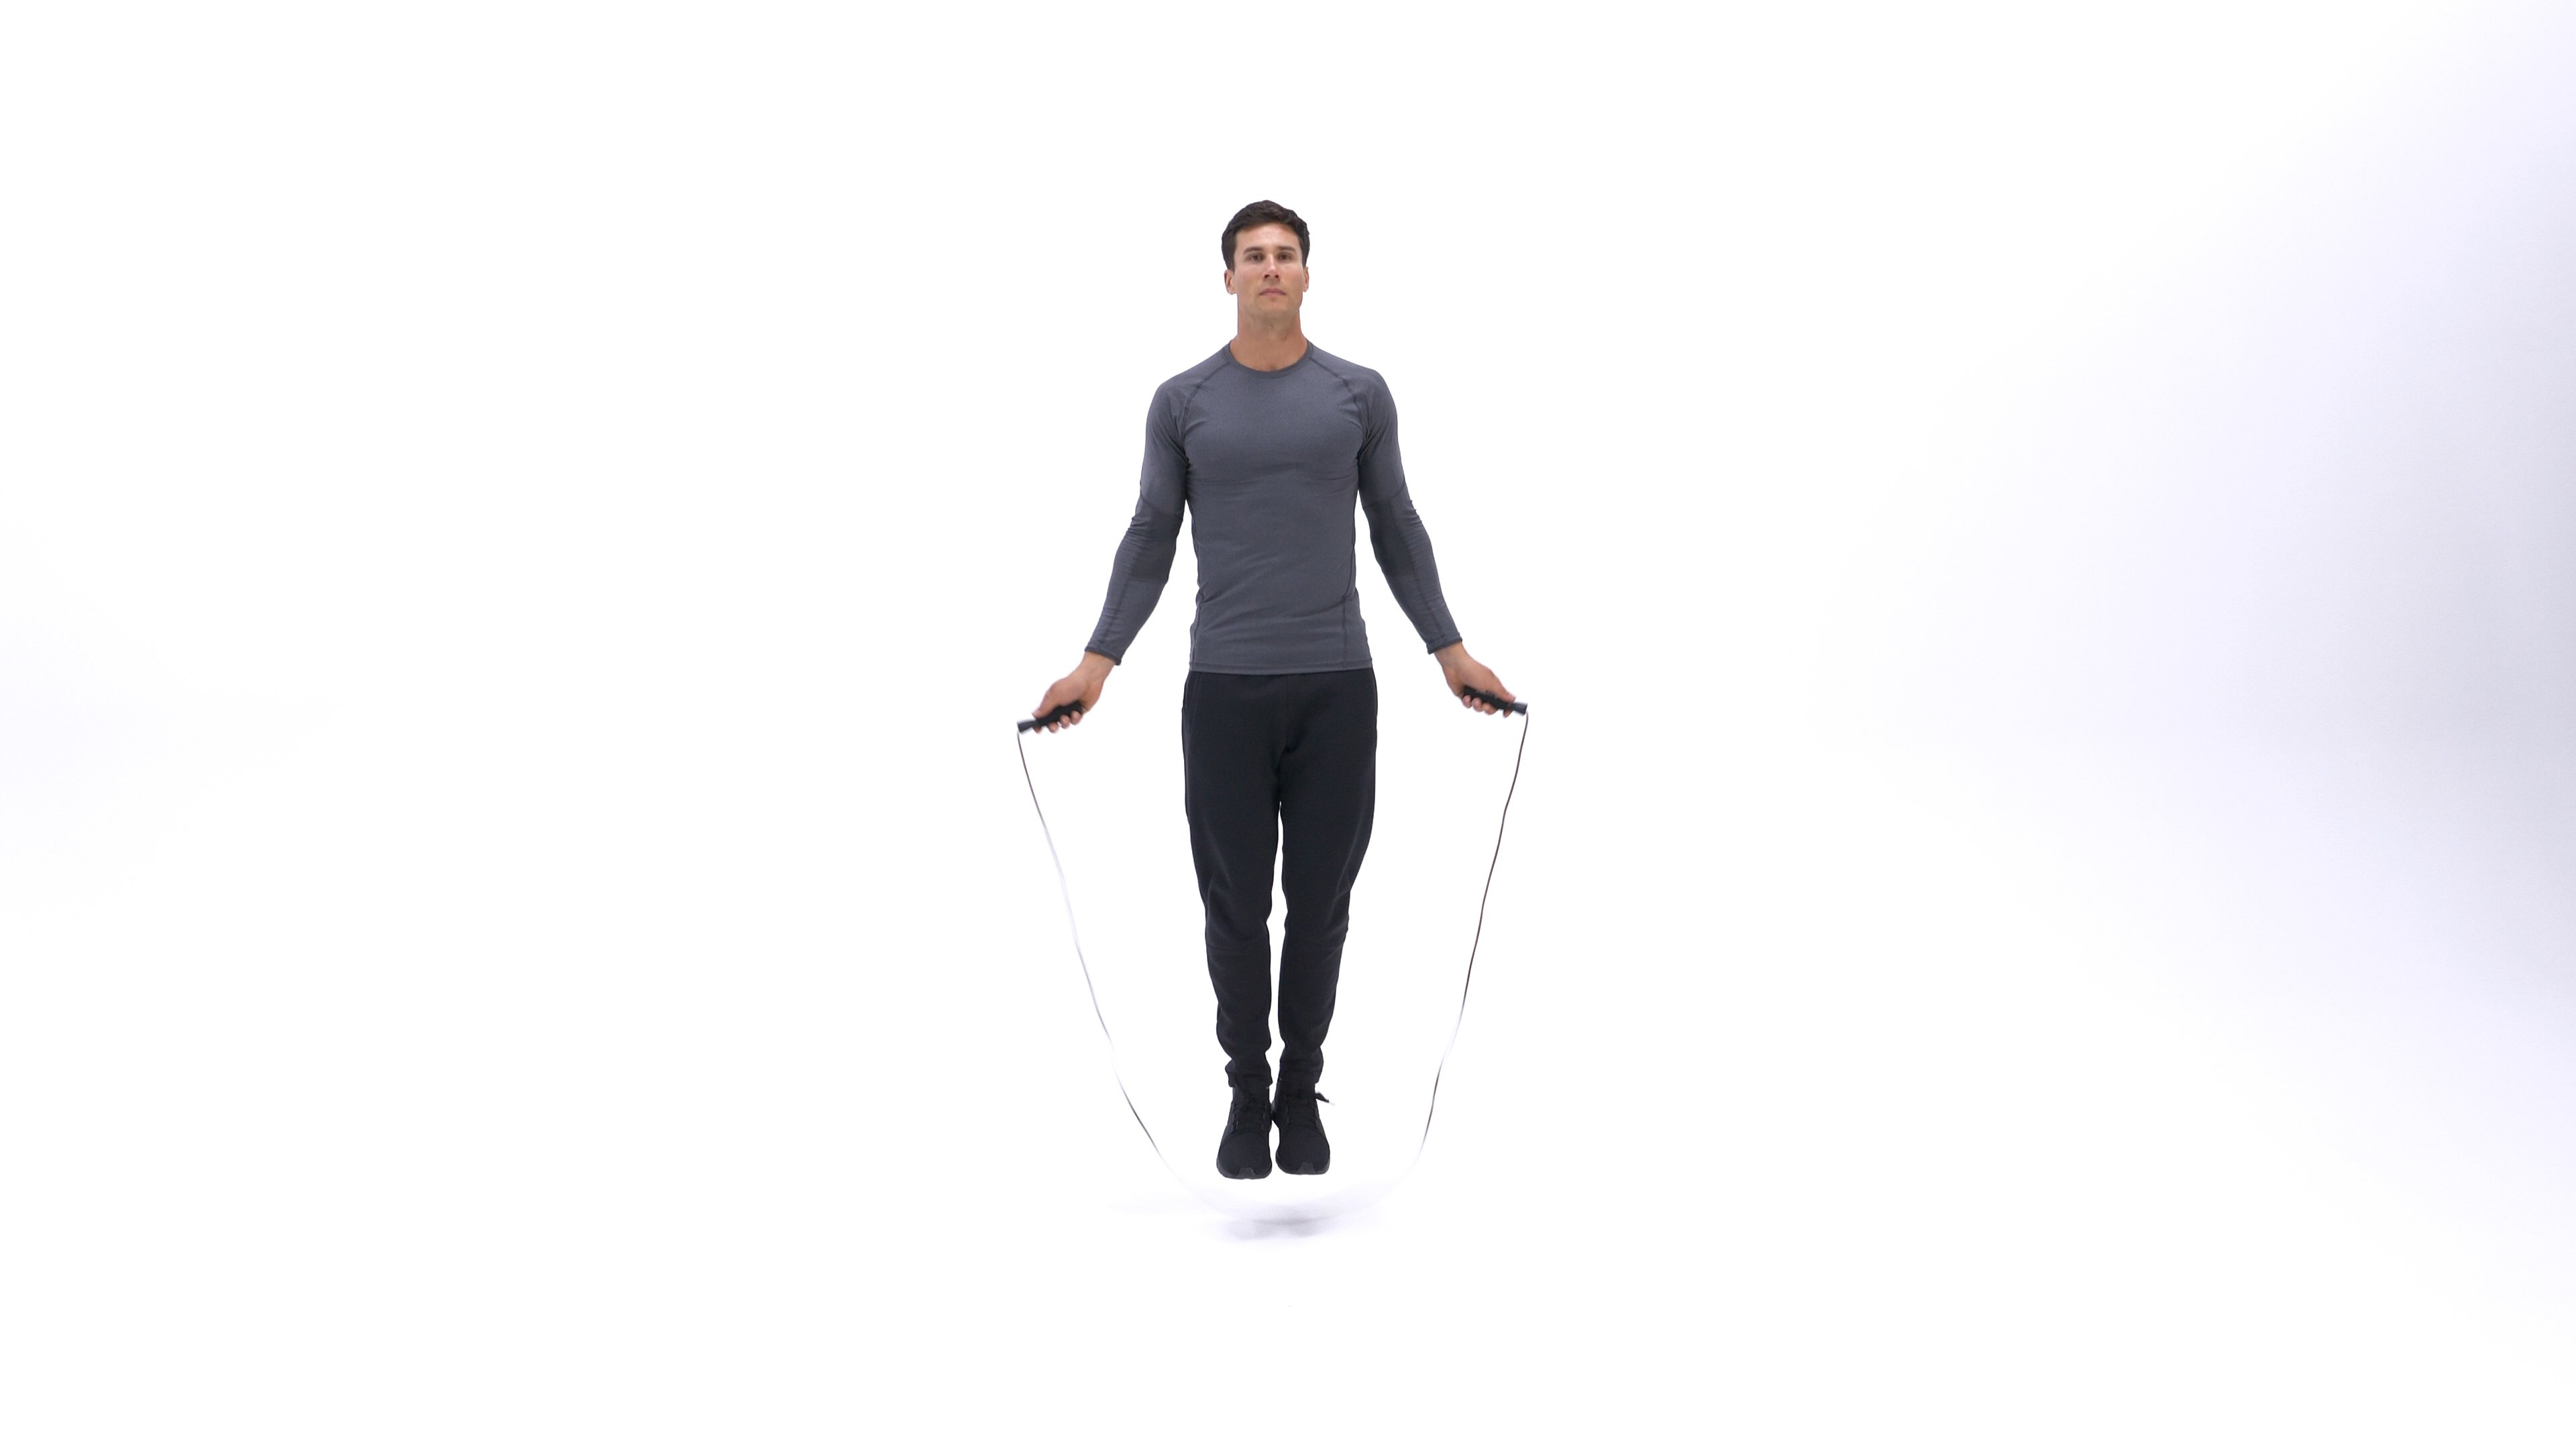 Jumping rope image